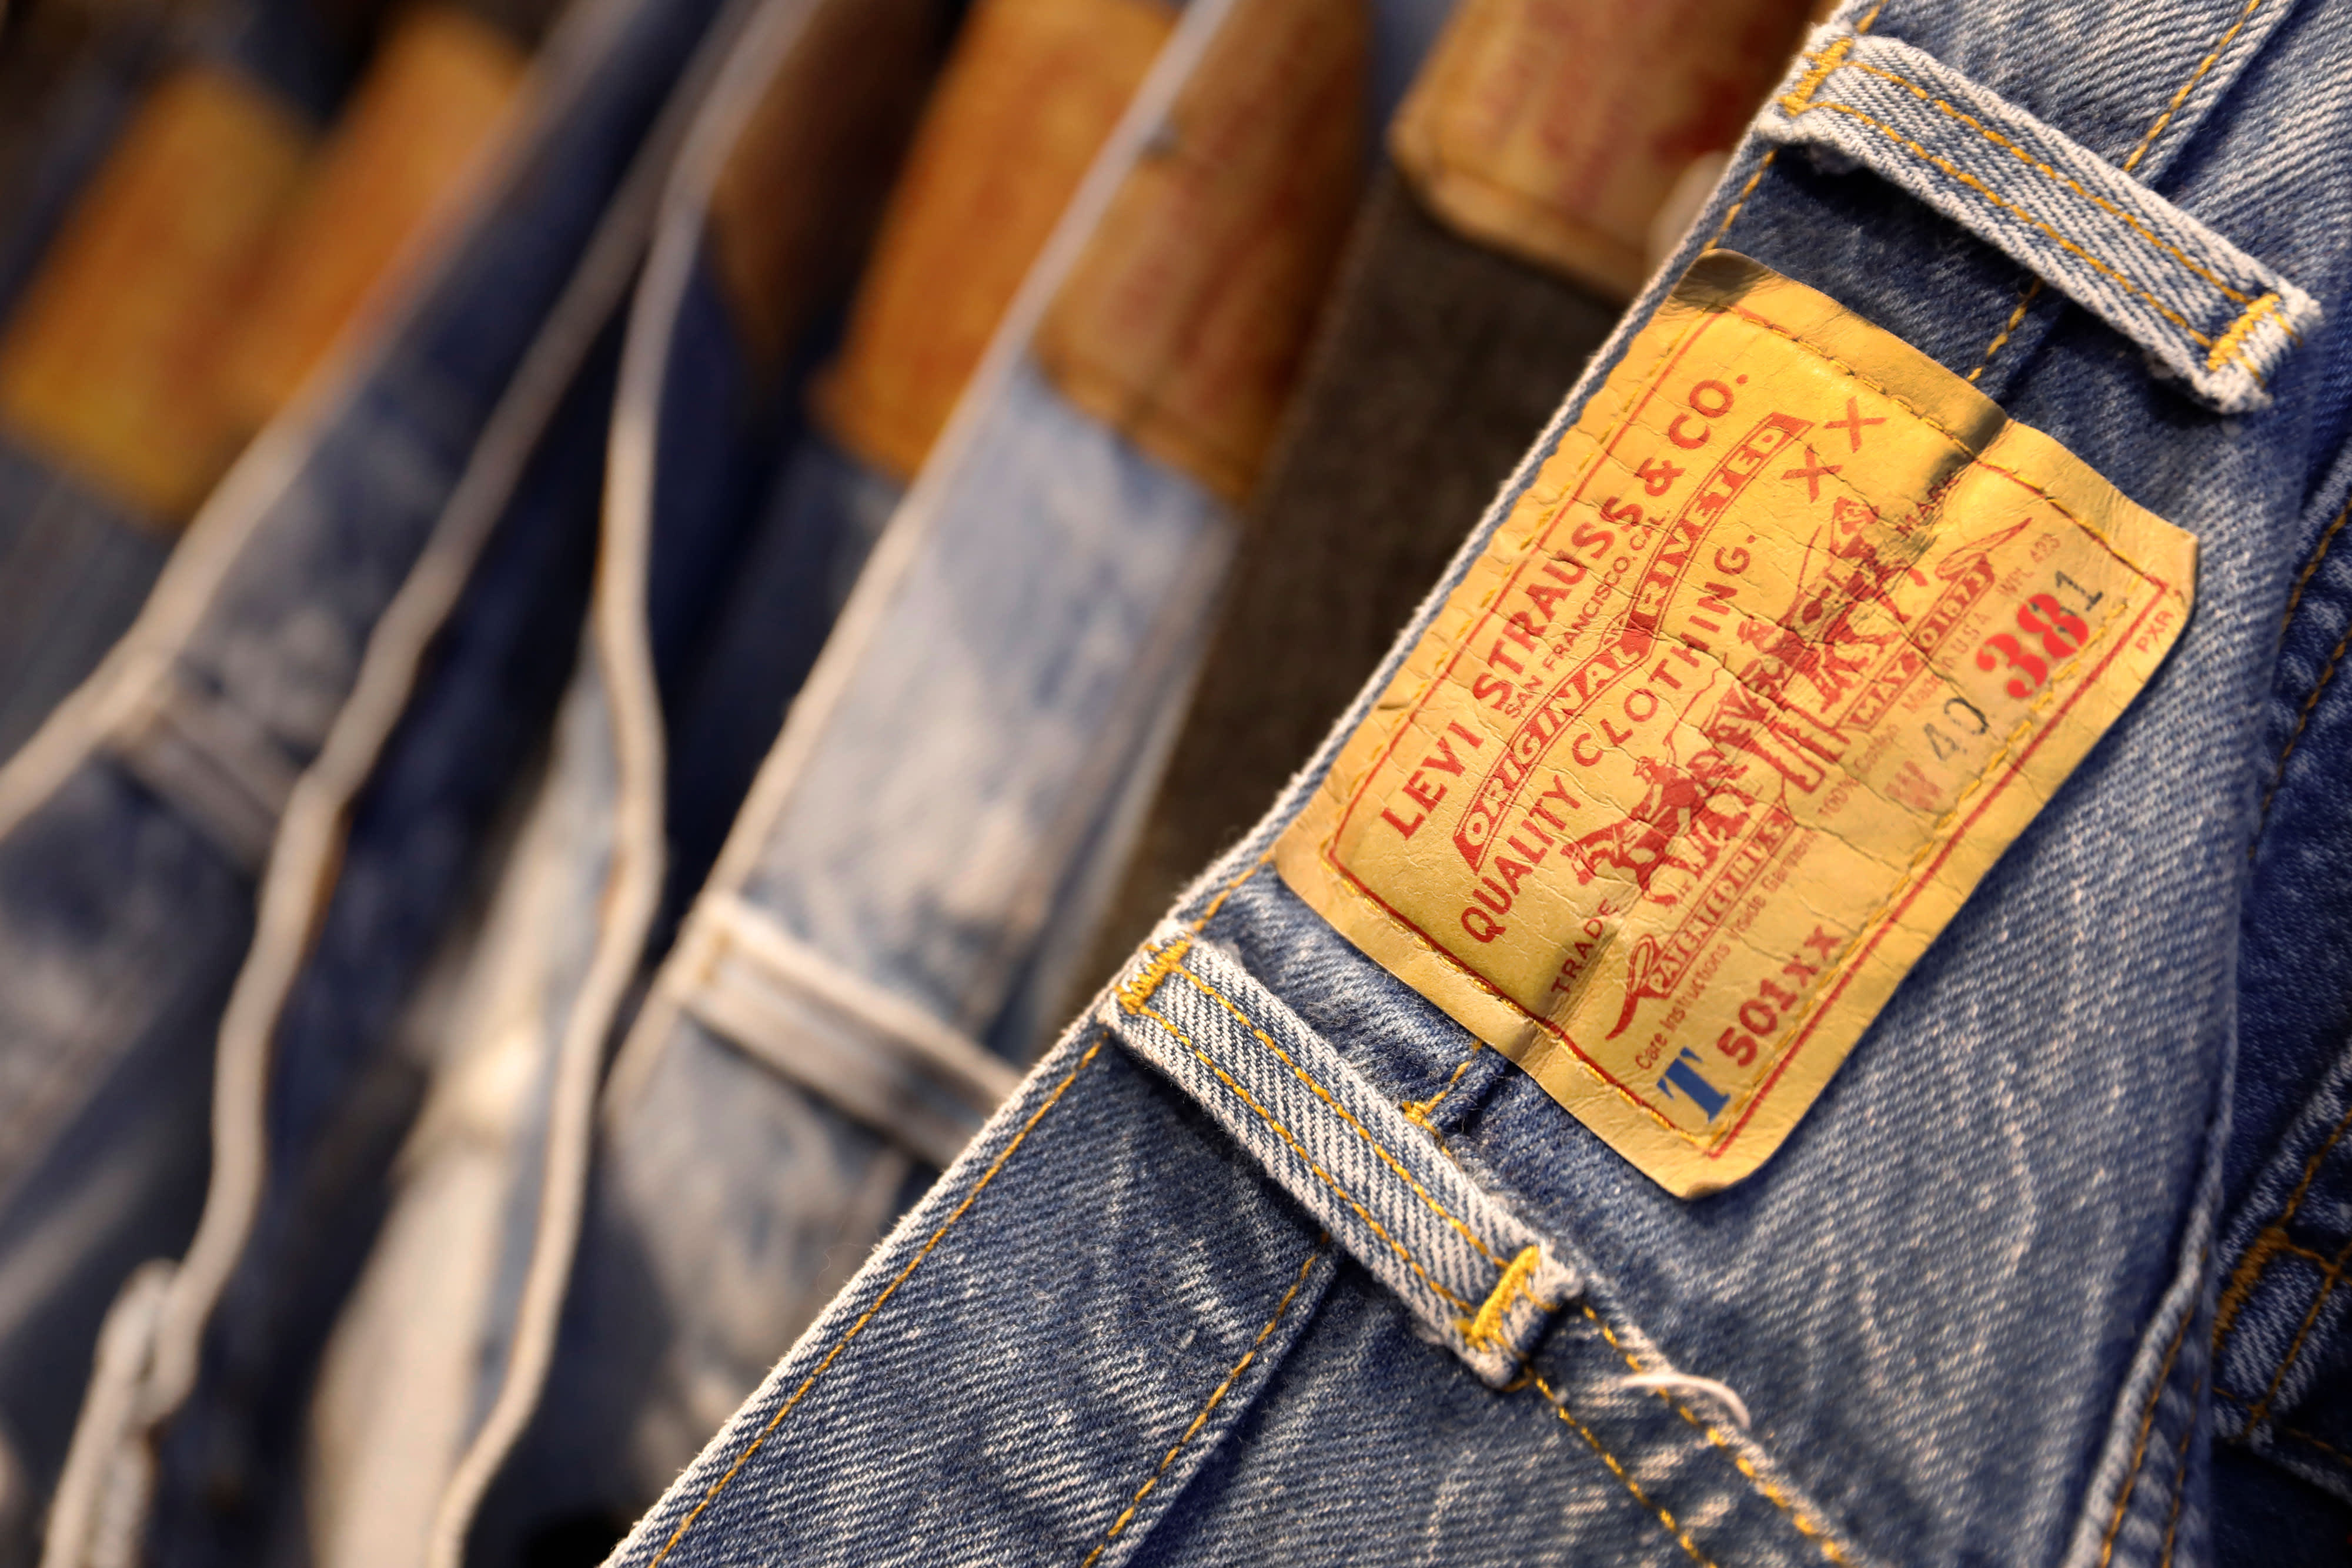 Levi Strauss CEO Chip Bergh on taking big risks with the jeans brand